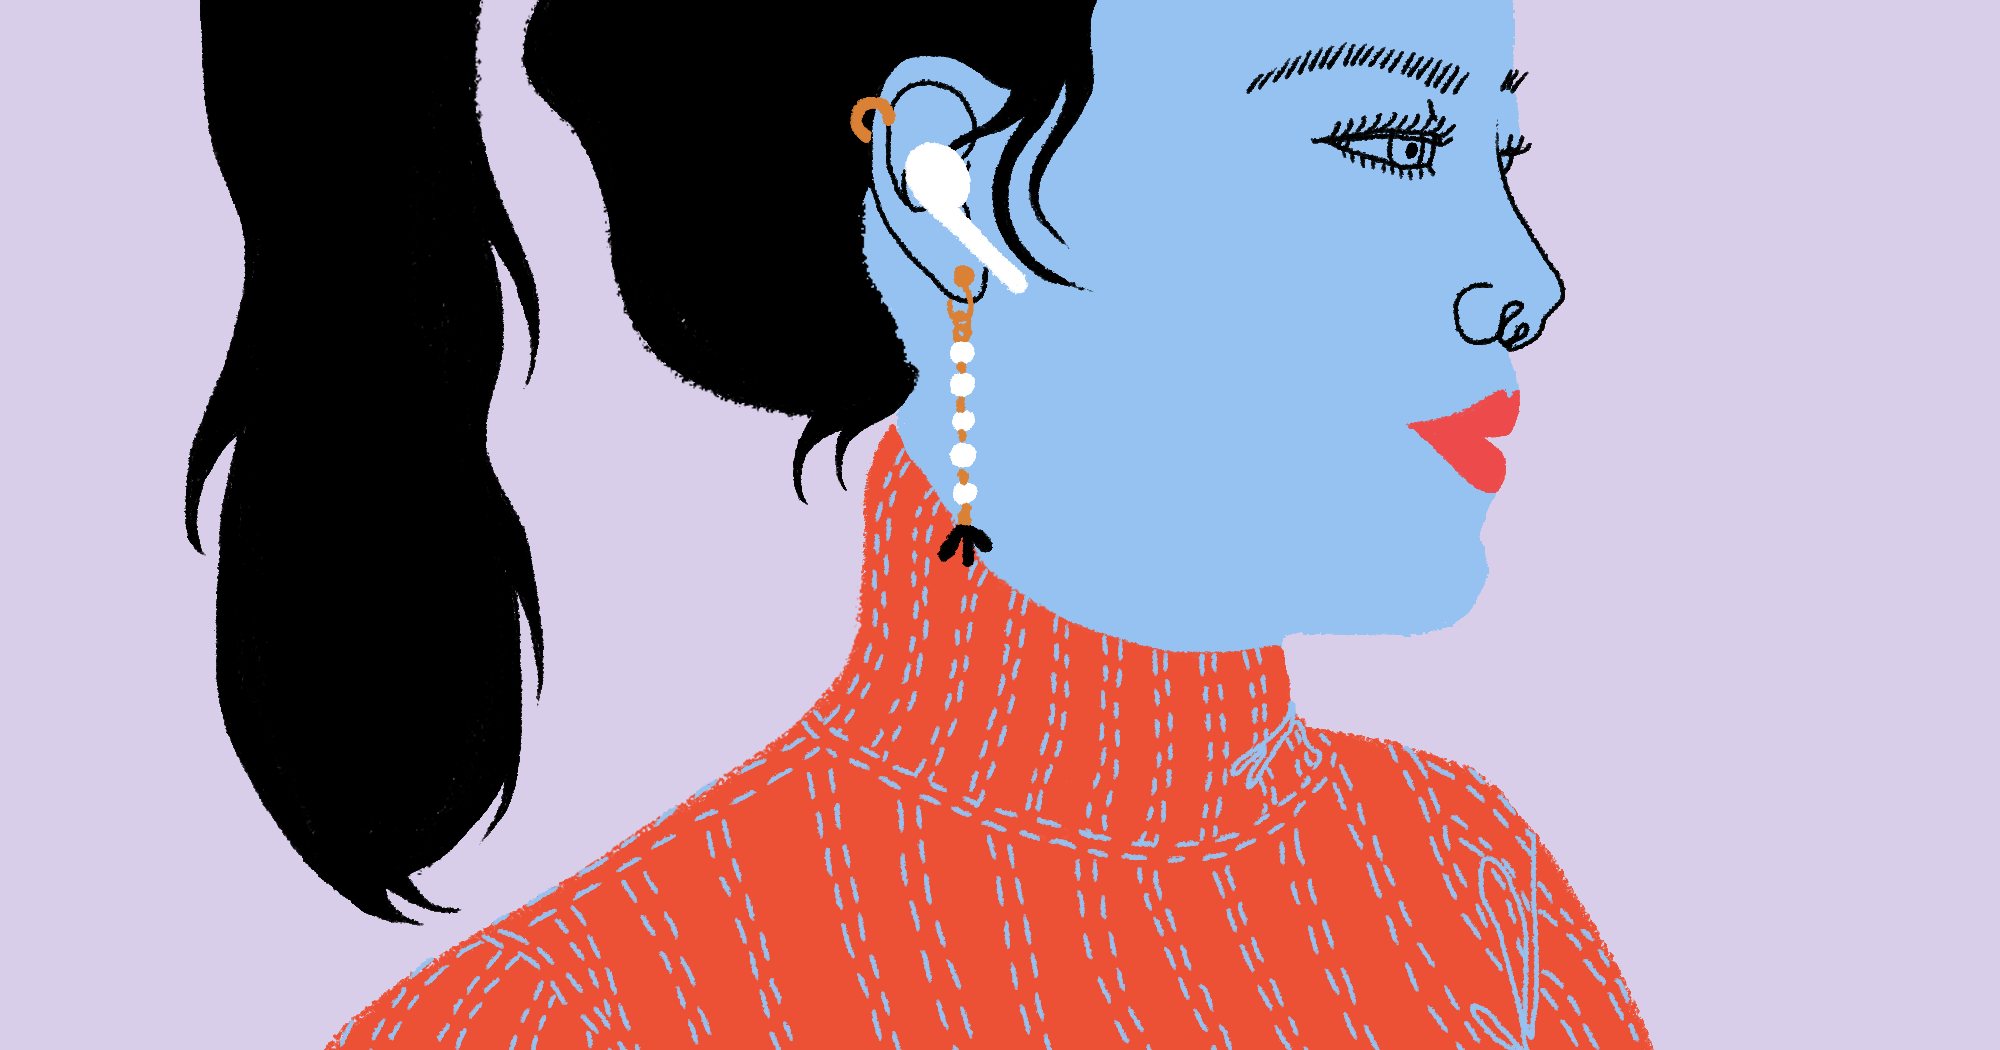 The Brand-New Podcasts Of 2019 We Can't Wait To Listen To